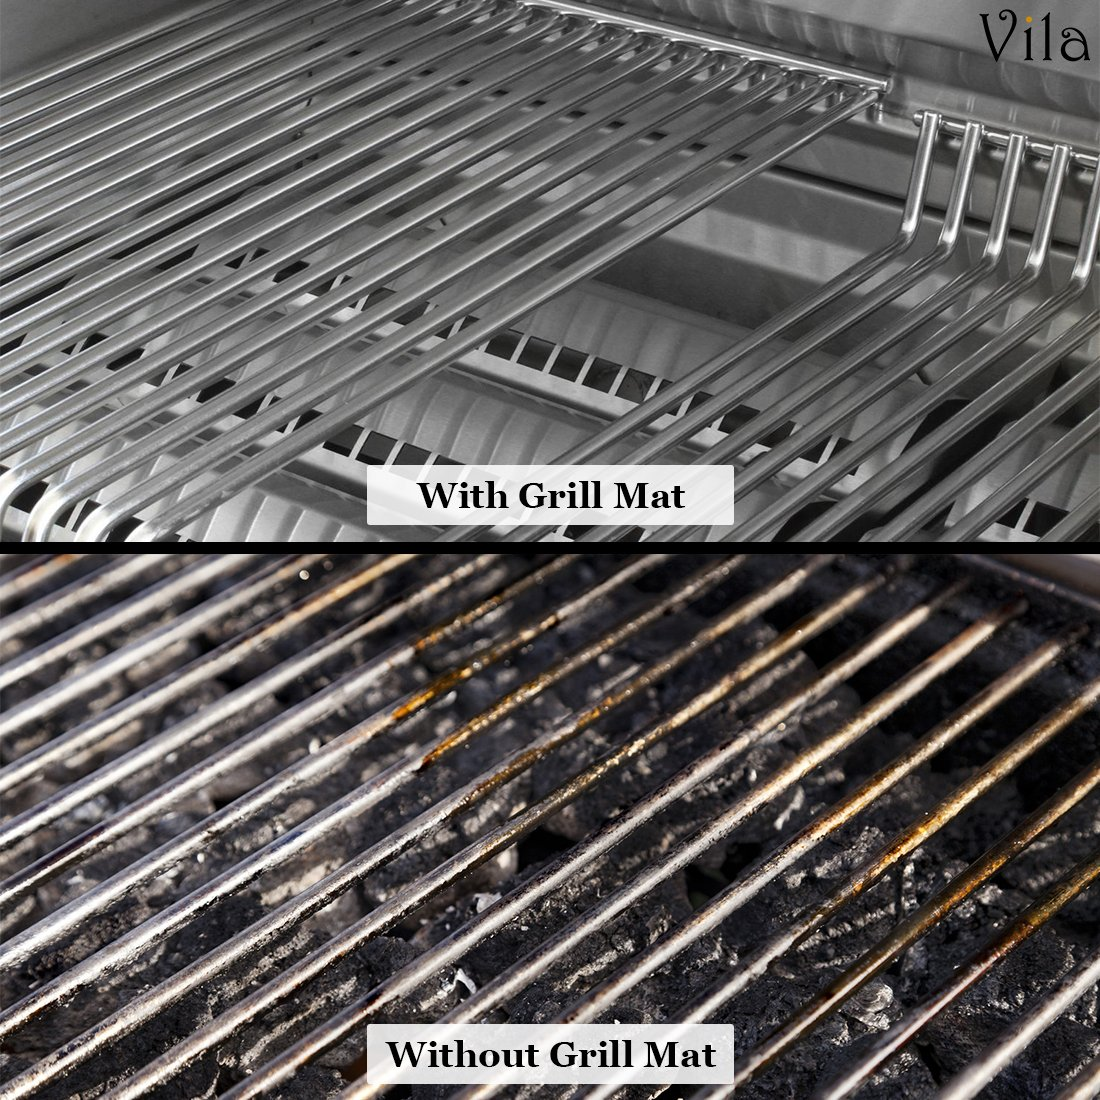 2 Reusable BBQ Grill Mats -- High temperature resistant up to 500° Fahrenheit - Heavy-Duty, Easy to clean - Ideal for charcoal grills, electric ovens, microwaves and smokers - Great gift for BBQ Lover